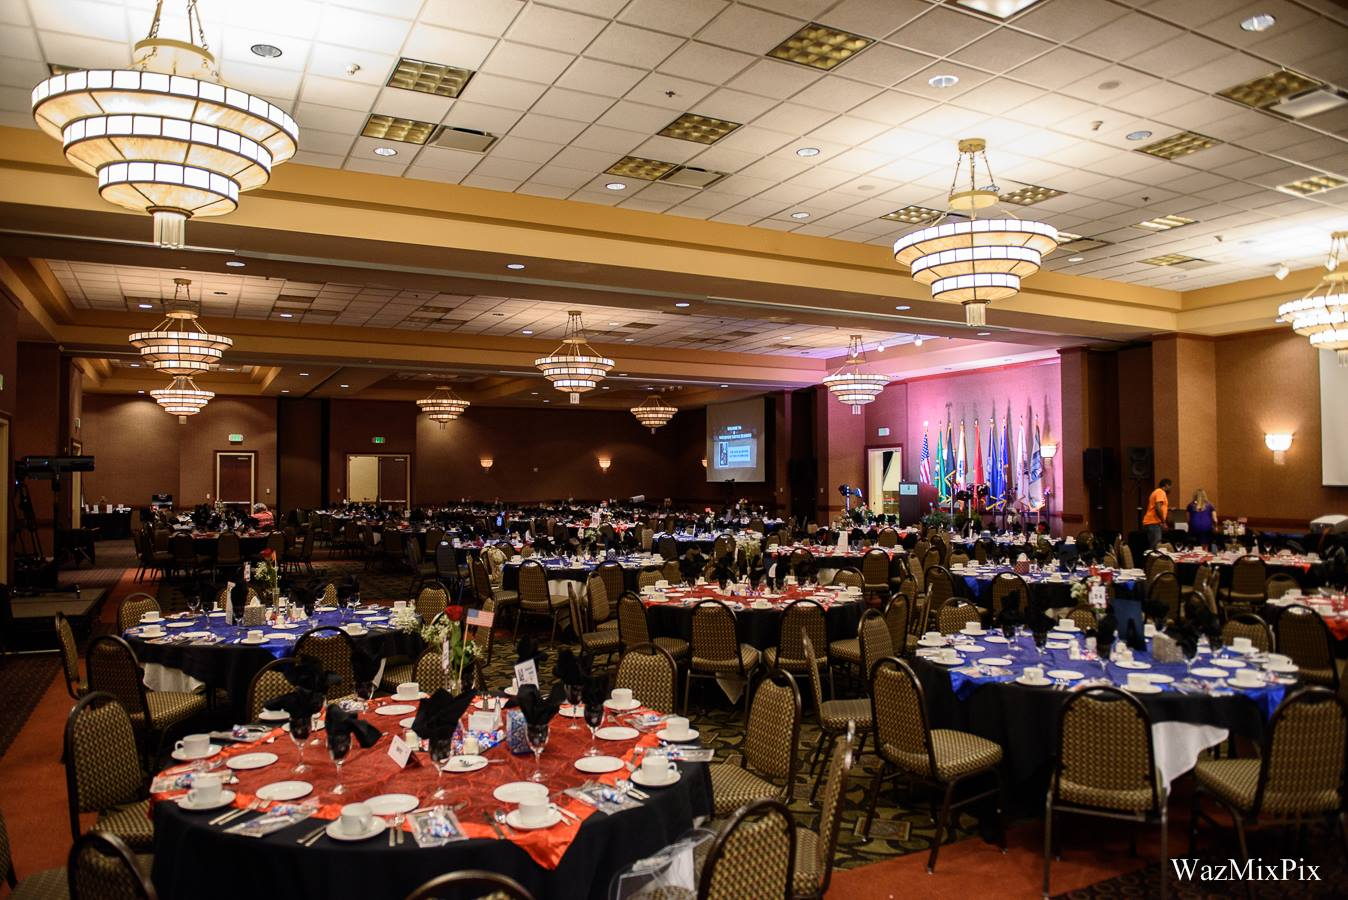 Northwest battle buddies annual dinner auction may 6th for Annual dinner decoration